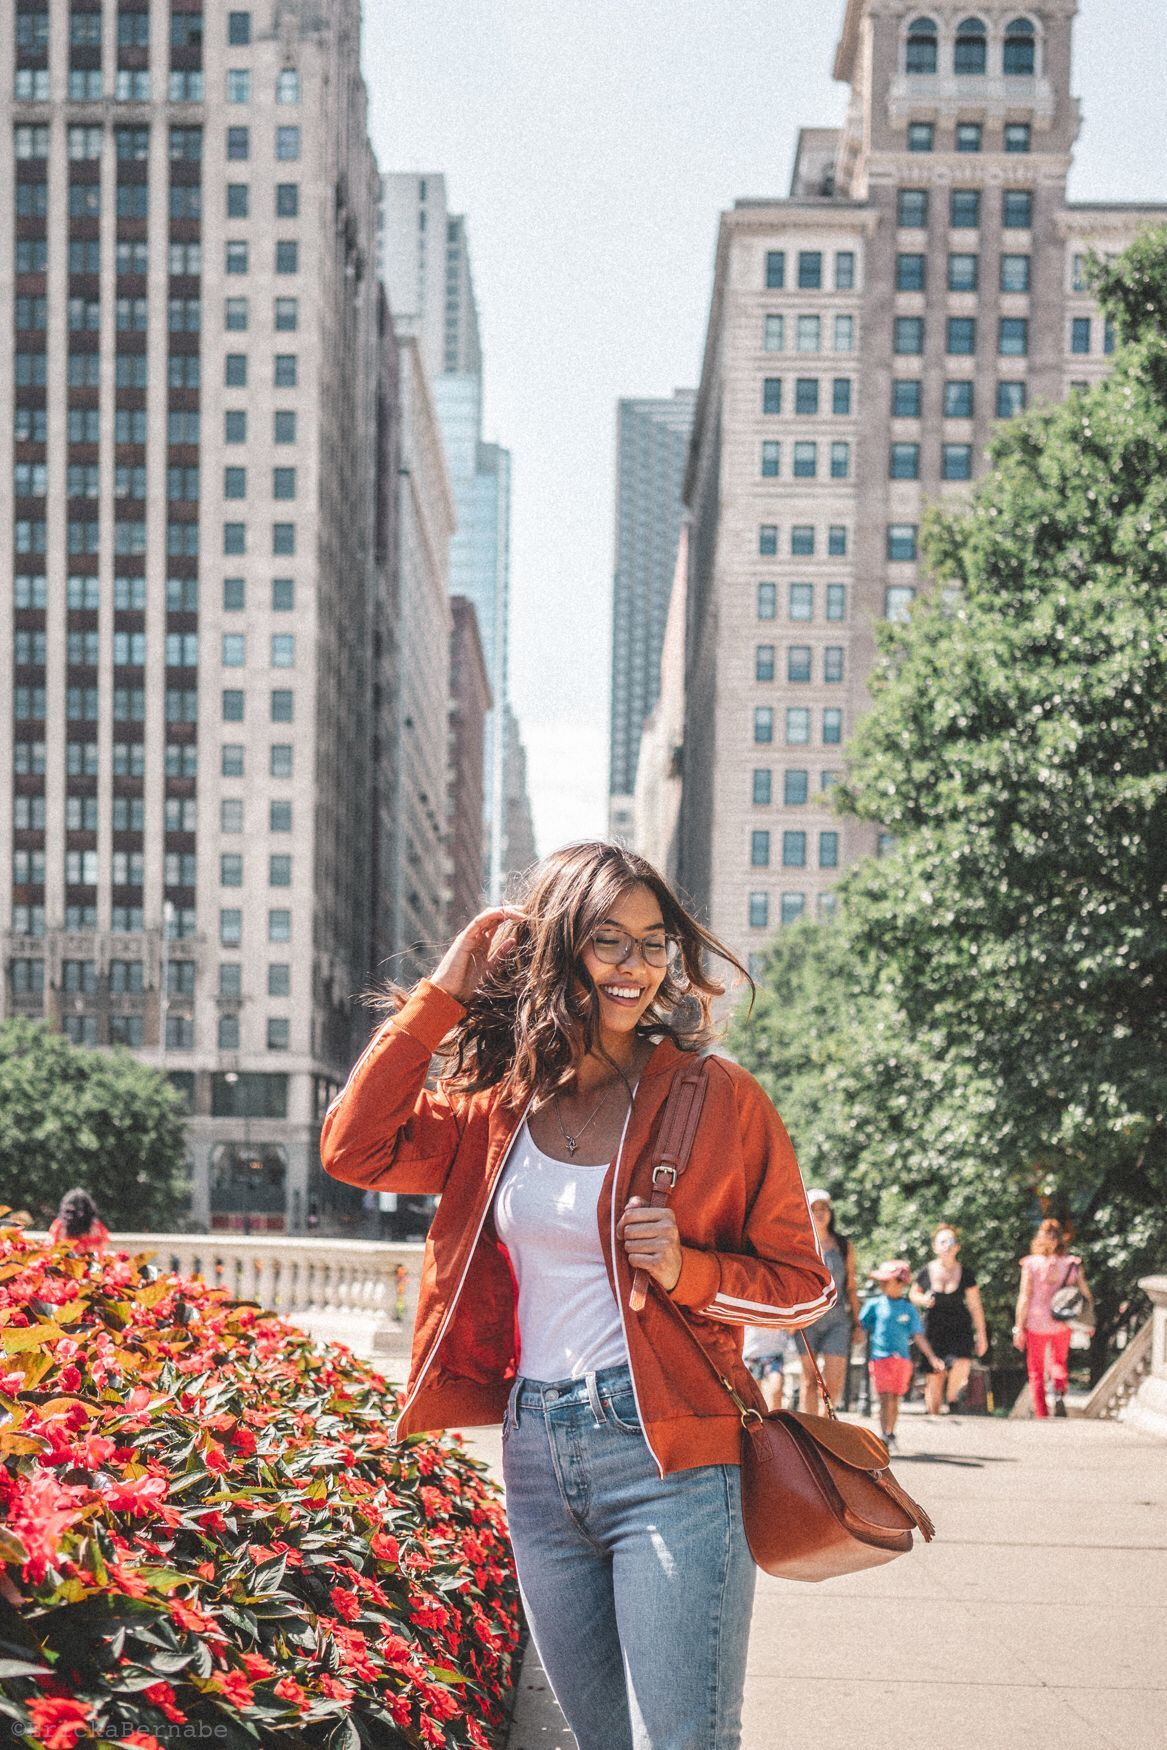 Chicago Travel Diaries Travel Photography Golden Hour Photography Green Jump  Chicago Travel Diaries Travel Photography Golden Hour Photography Green Jumpsuit Fashion Sty...